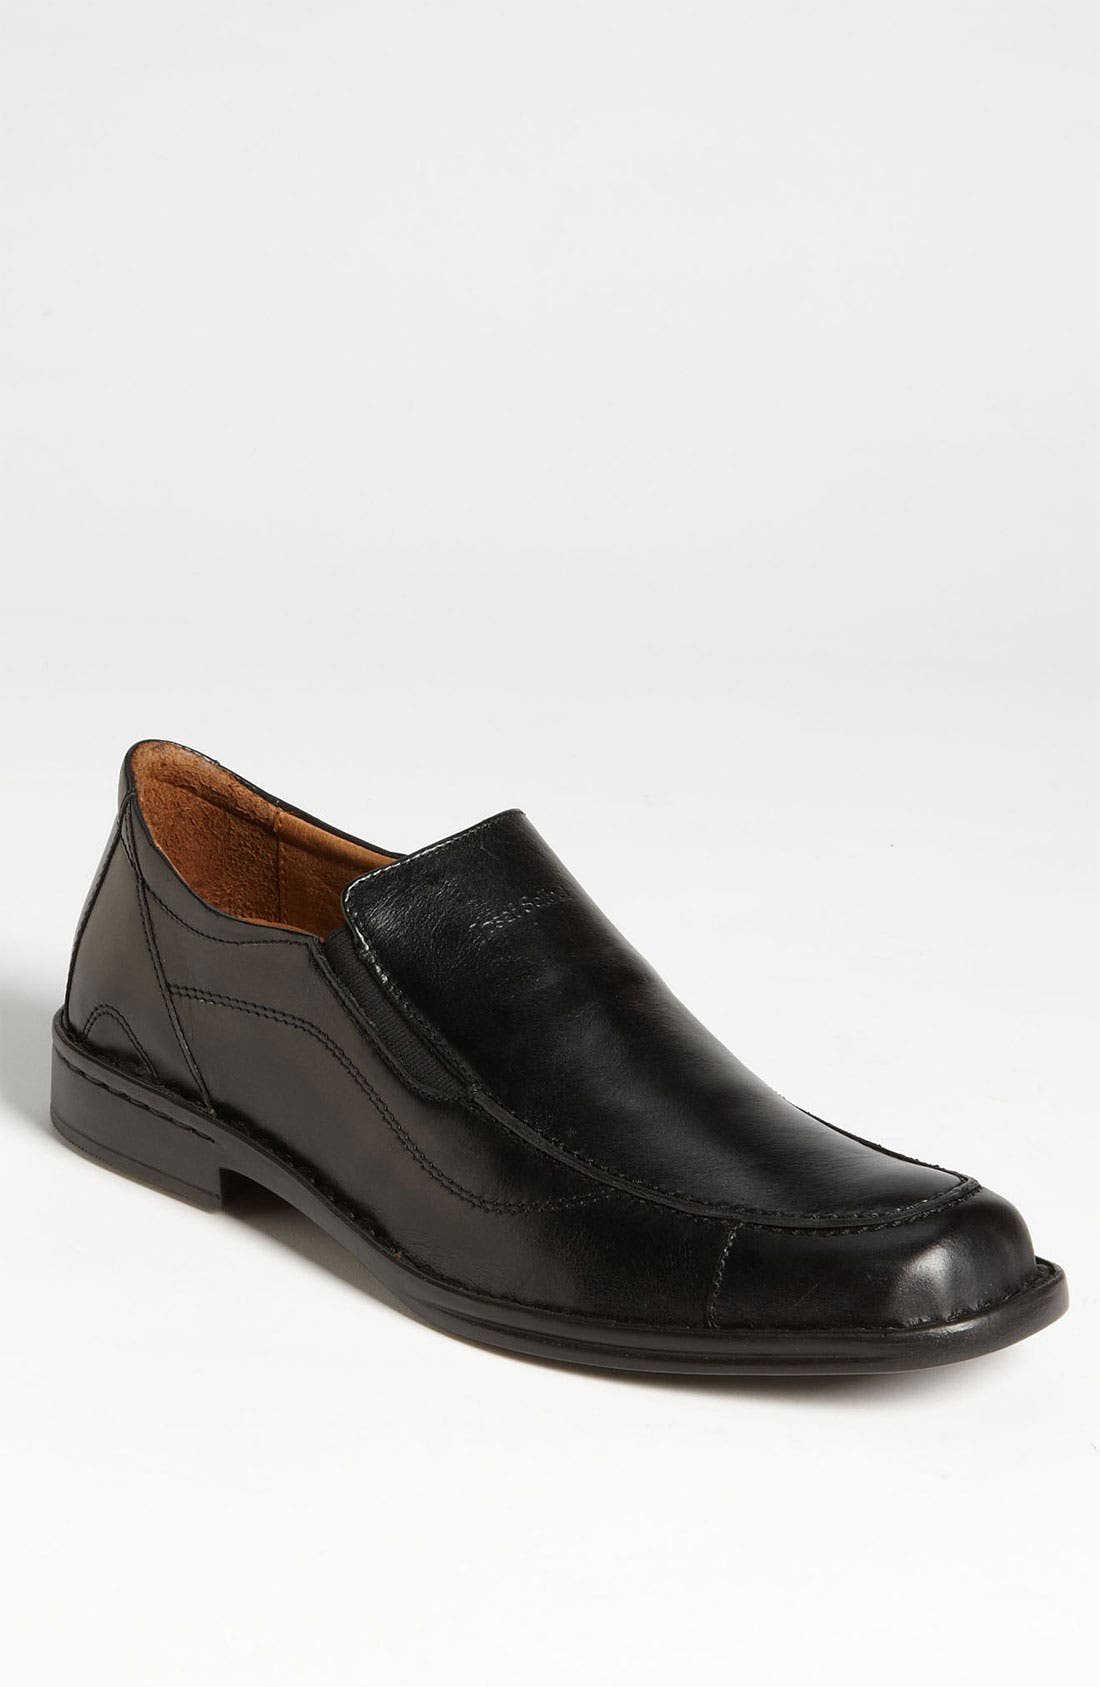 Main Image - Josef Seibel 'Douglas' Loafer